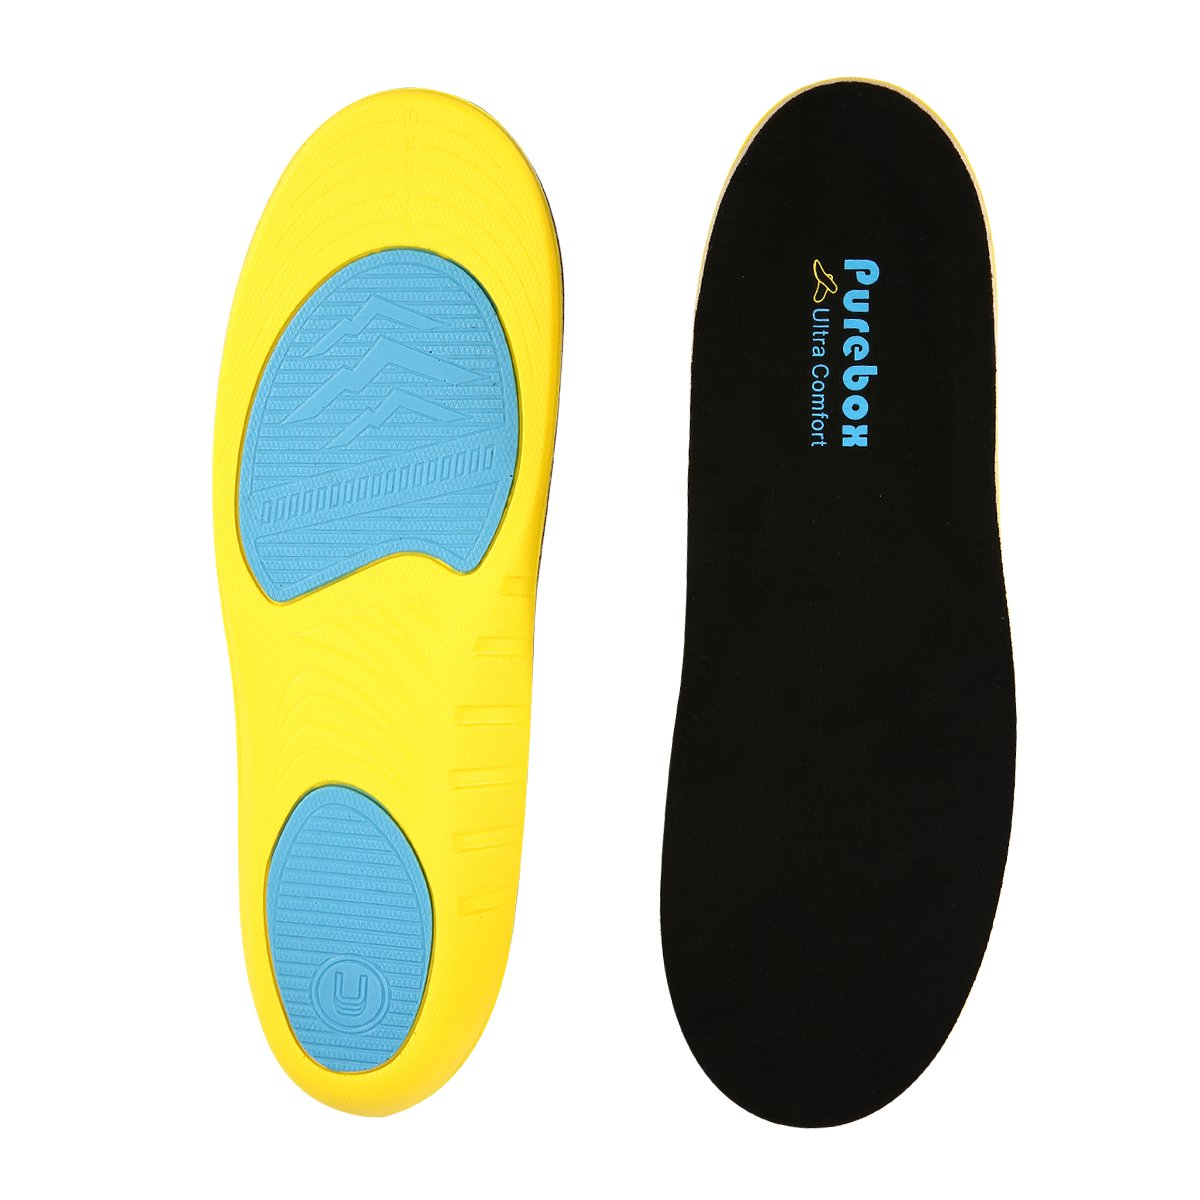 Shoe Insoles Orthotics Shoe Inserts Arch Support Shock Absorption Insoles Comfort Cushioning Gel Heel, Can be Trimmed Full Length (Men's Size:US 8-12)